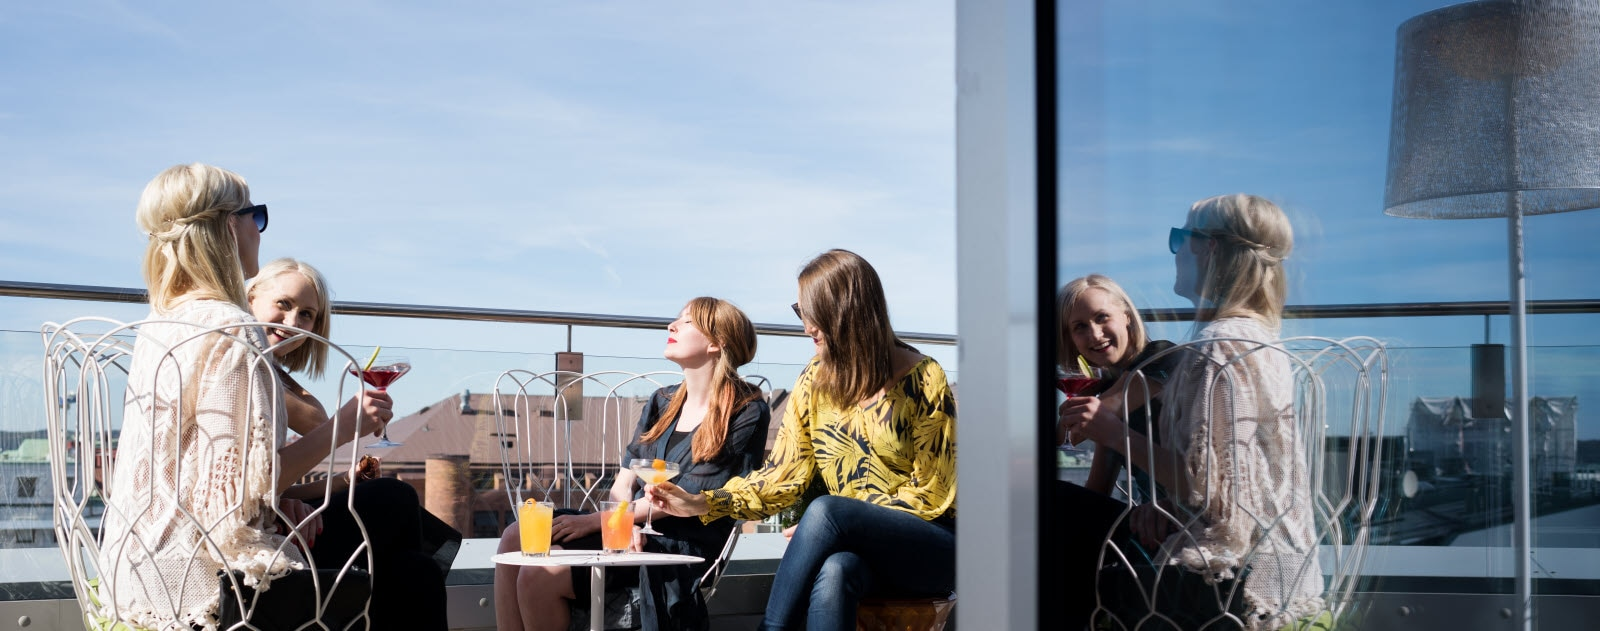 scandic-rubinen-summer-sommar-roof-top-bar-terrass.jpg